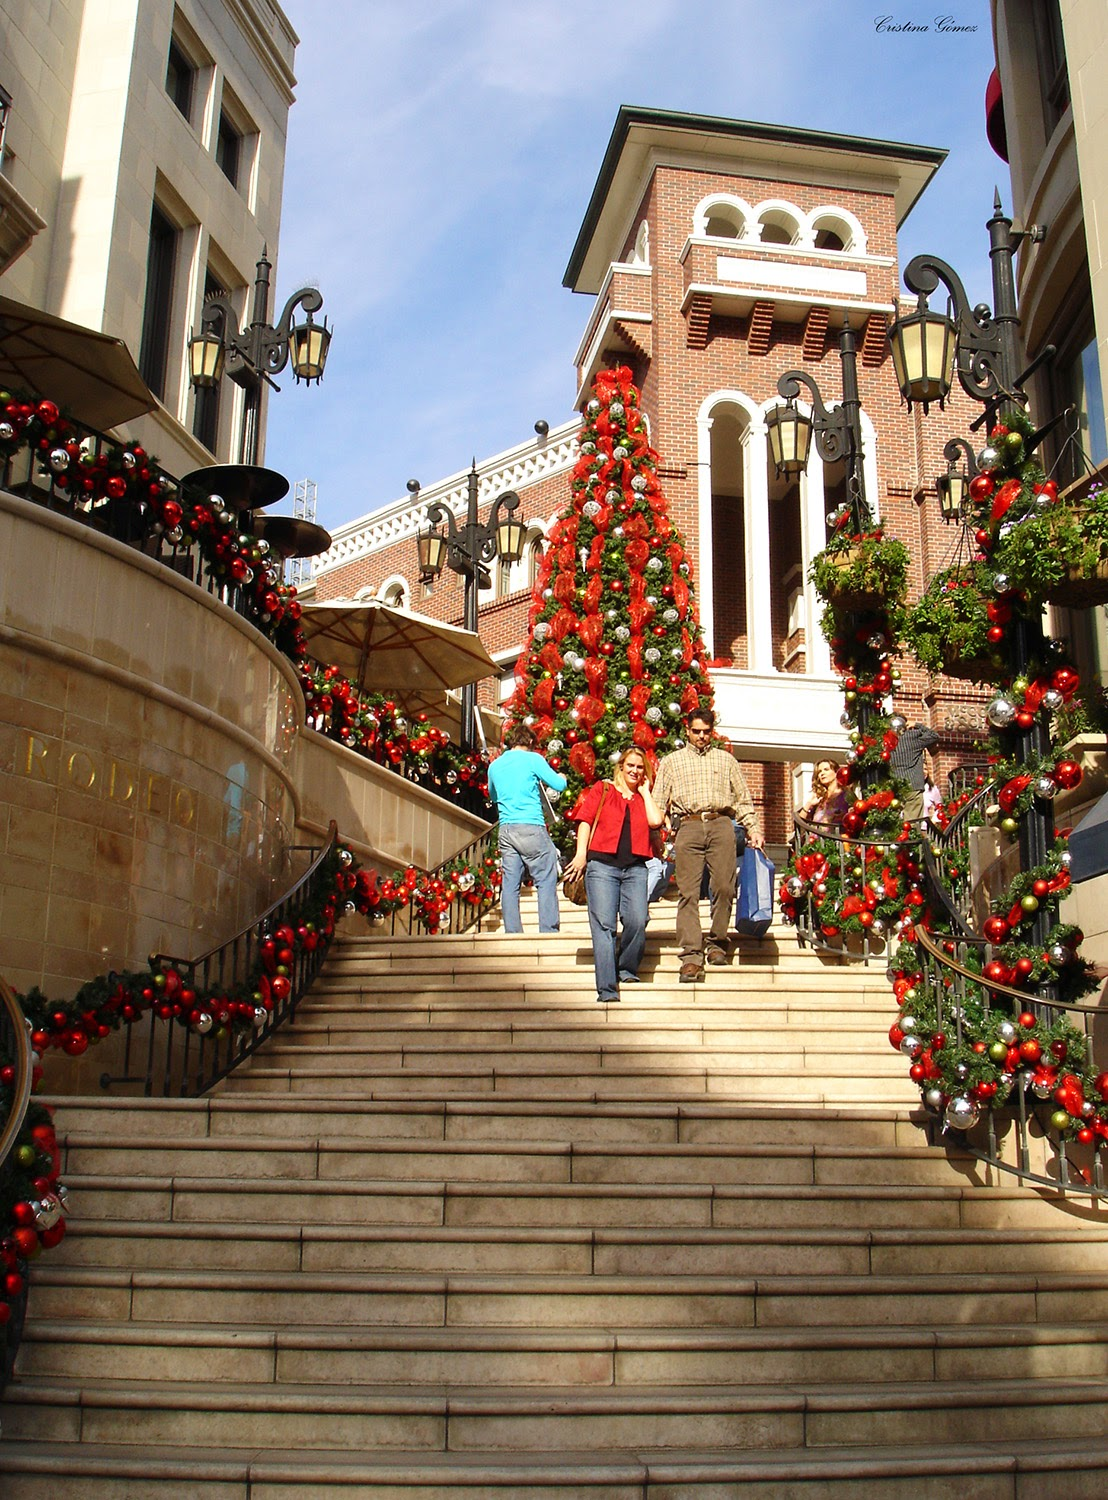 Christmas decorations in L.A., California